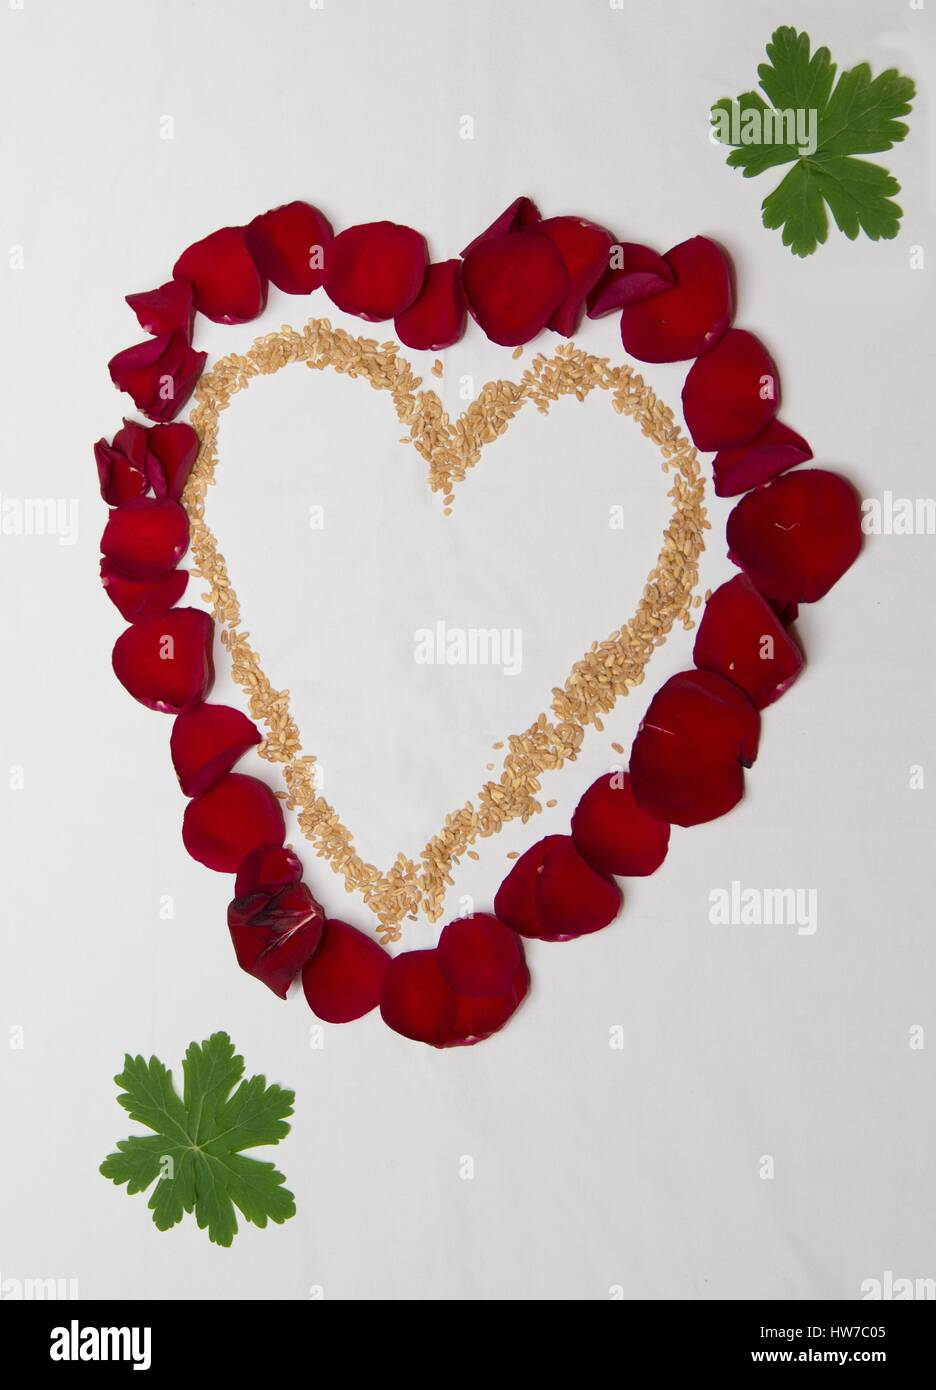 Heart from leaves of roses and wheat. Symbol of love, health and prosperity. - Stock Image